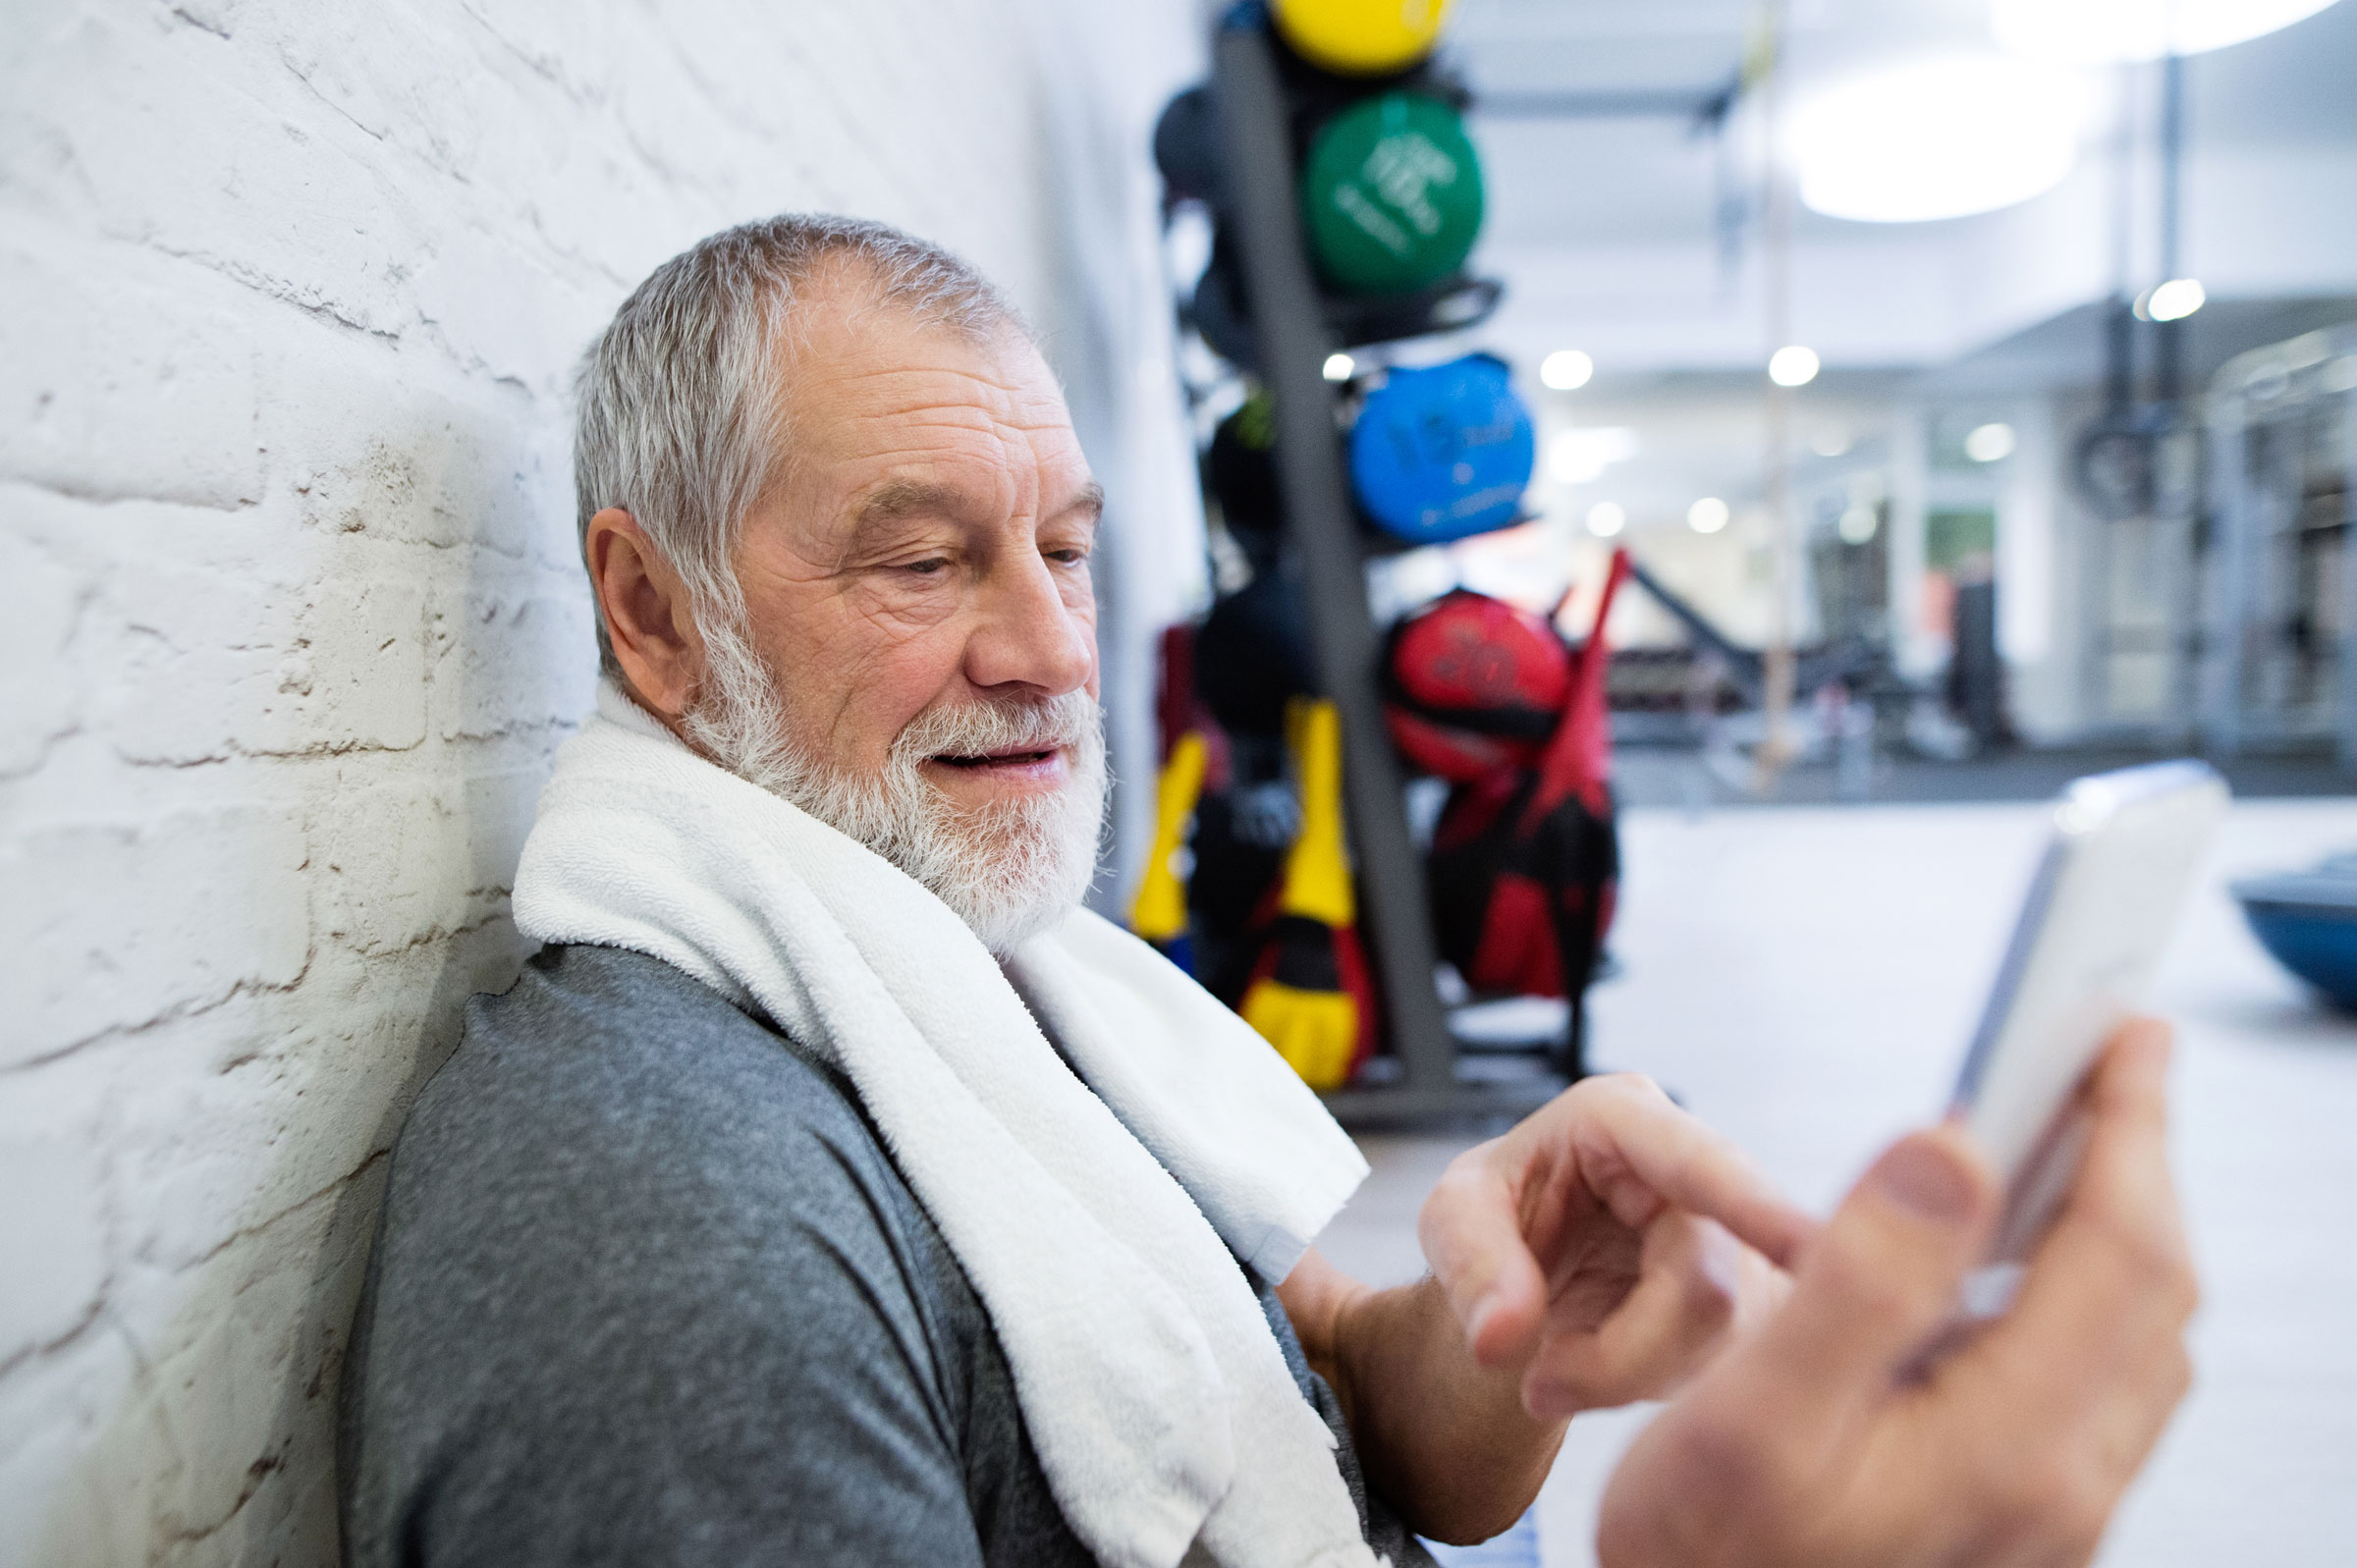 An older adult or technophobic personal training client overcomes challenges with fitness technology